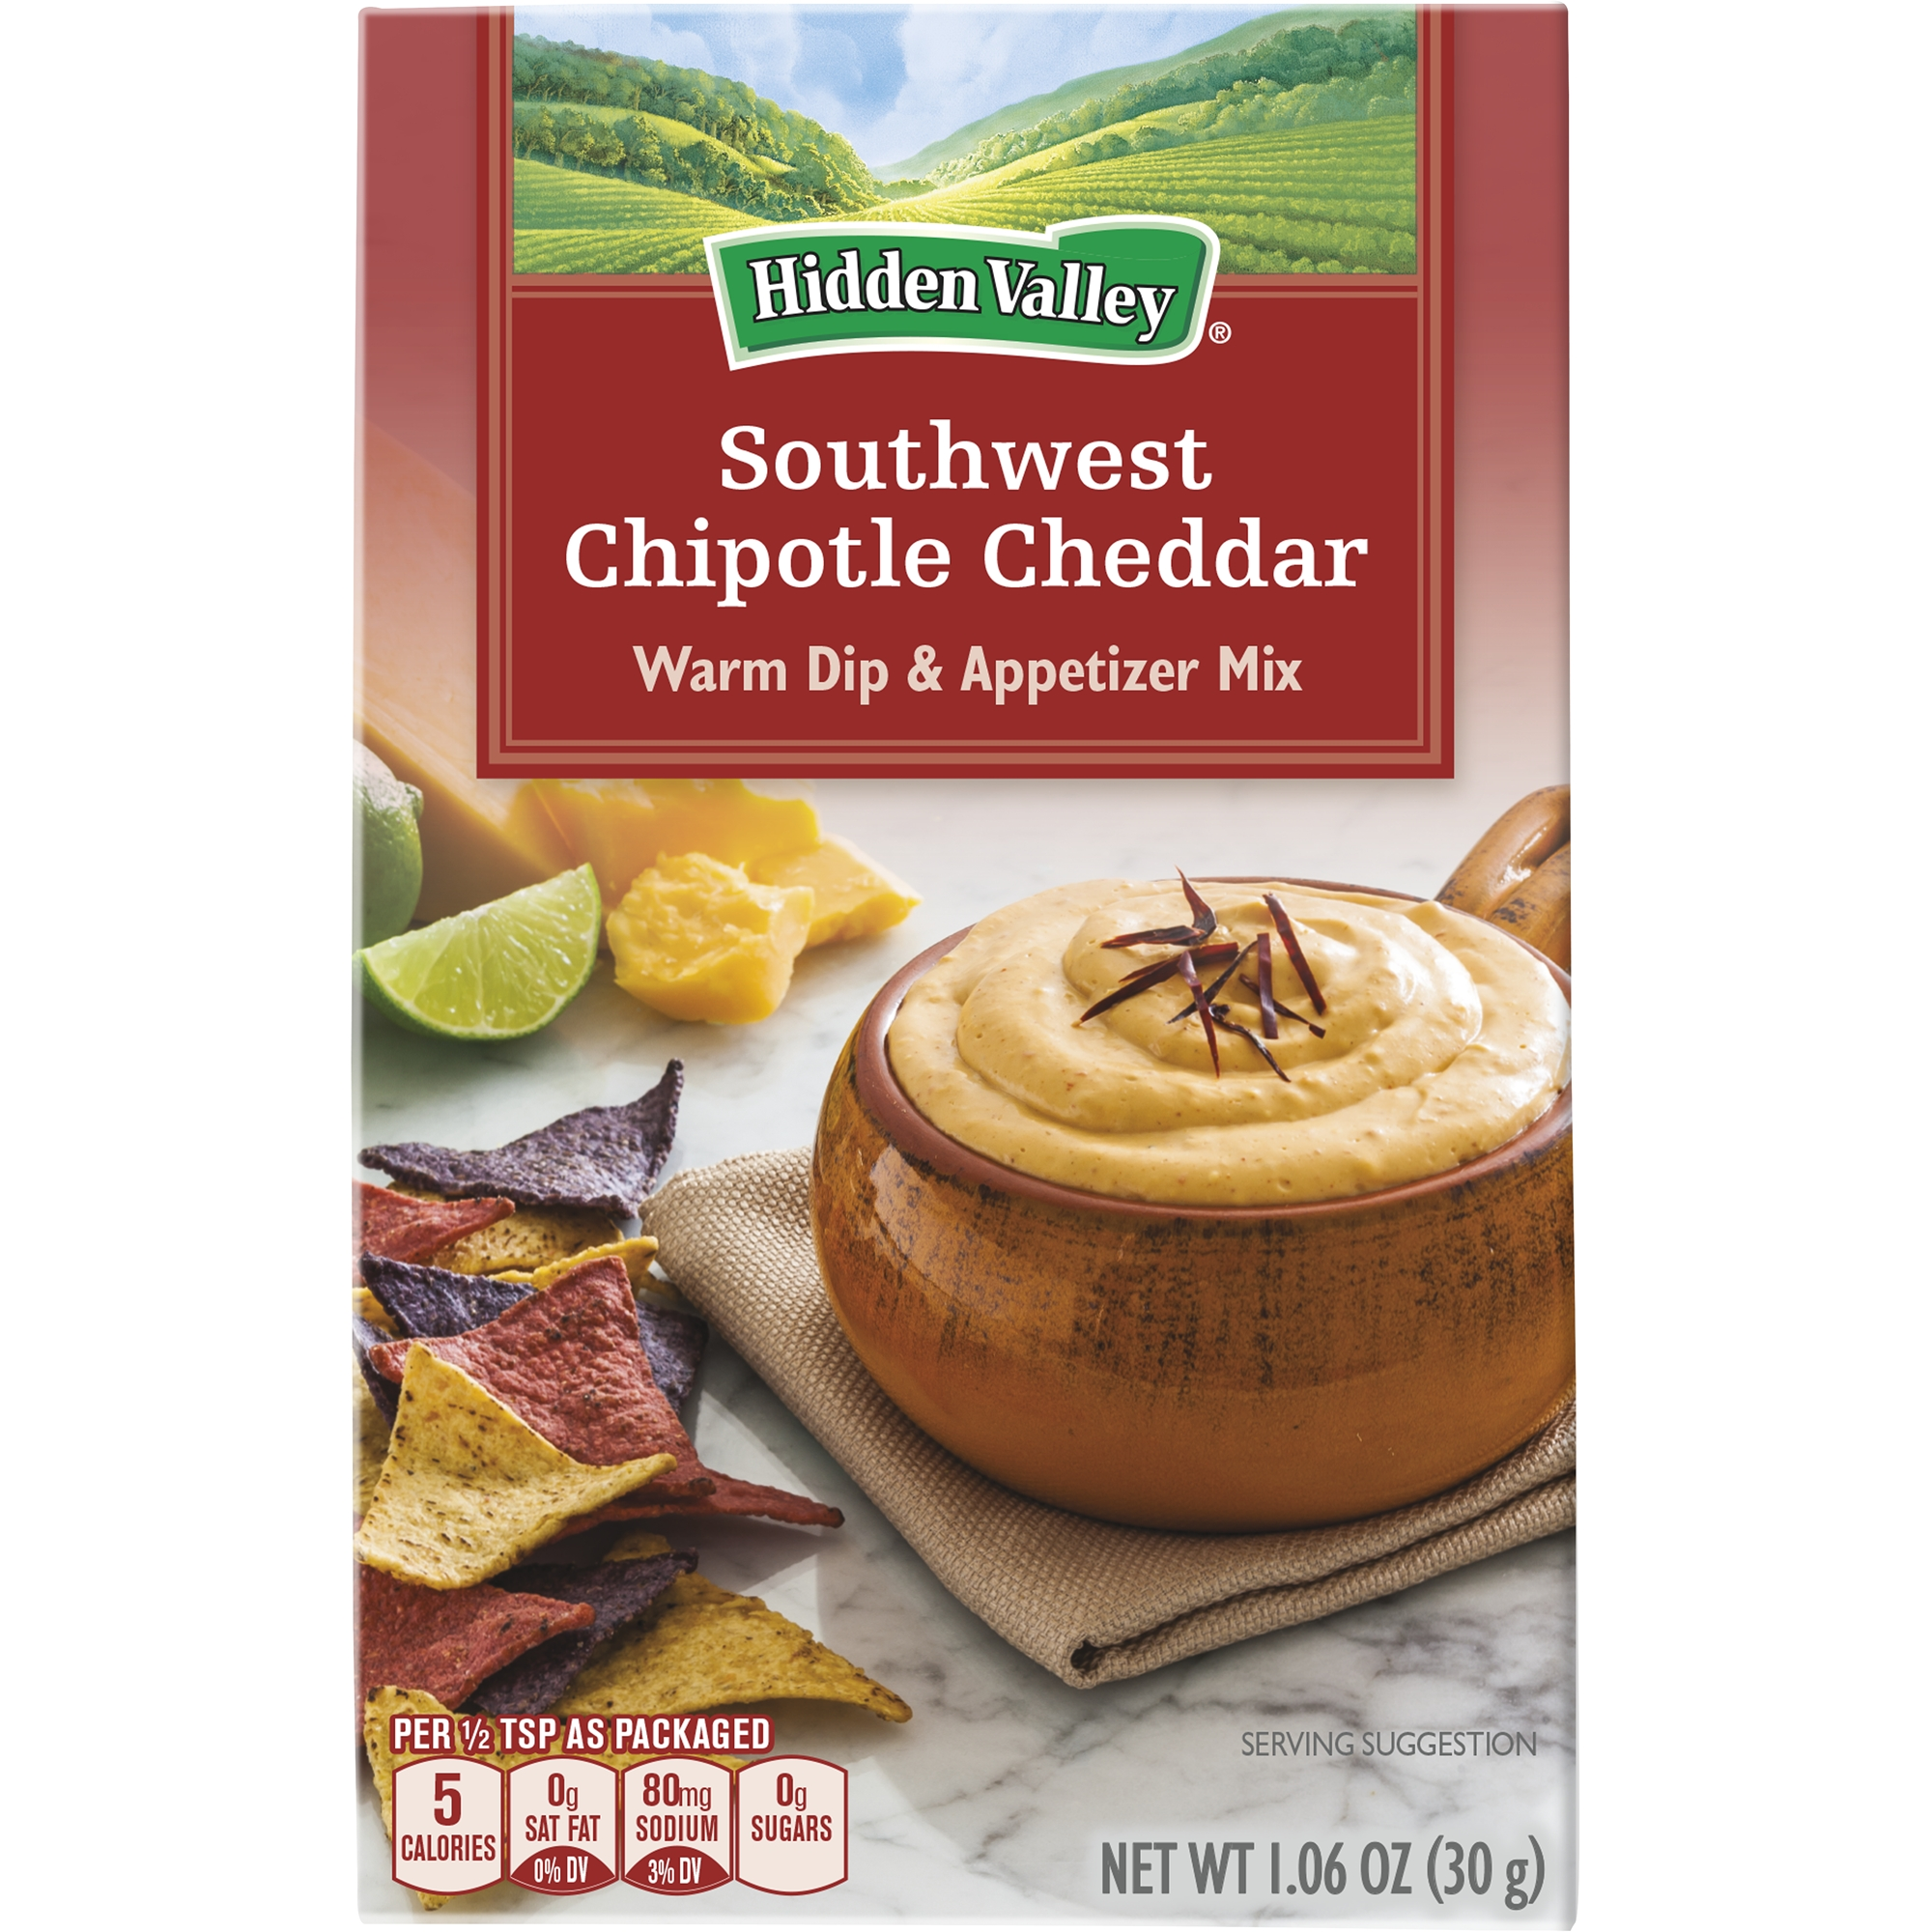 Hidden Valley Warm Dip & Appetizer Mix, Southwest Chipotle Cheddar, 1.06 Ounces by The HV Food Products Co.